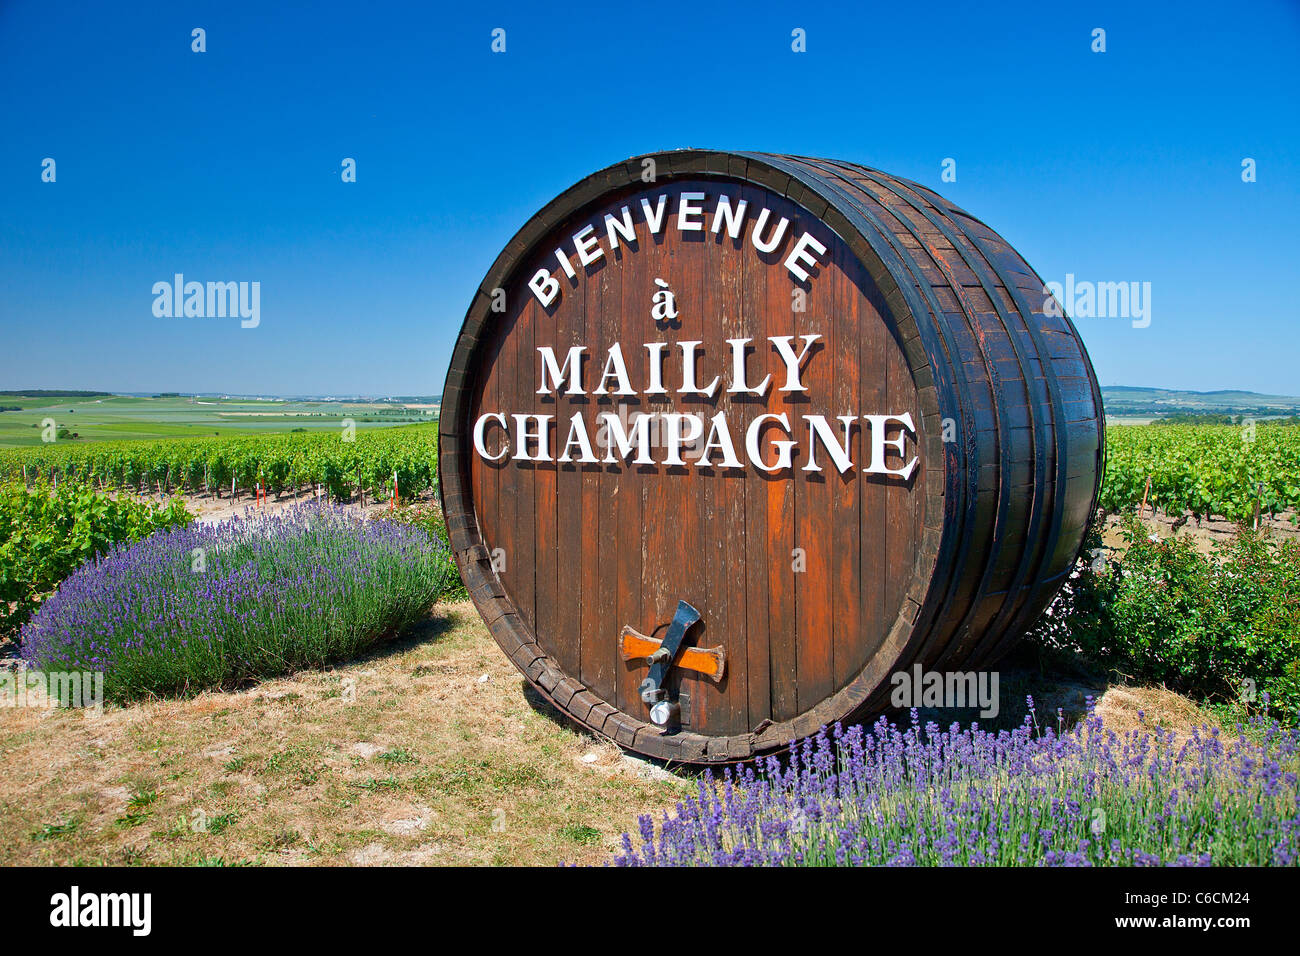 France, Marne, Mailly Champagne, a village close to Reims associated with Champagne wine - Stock Image